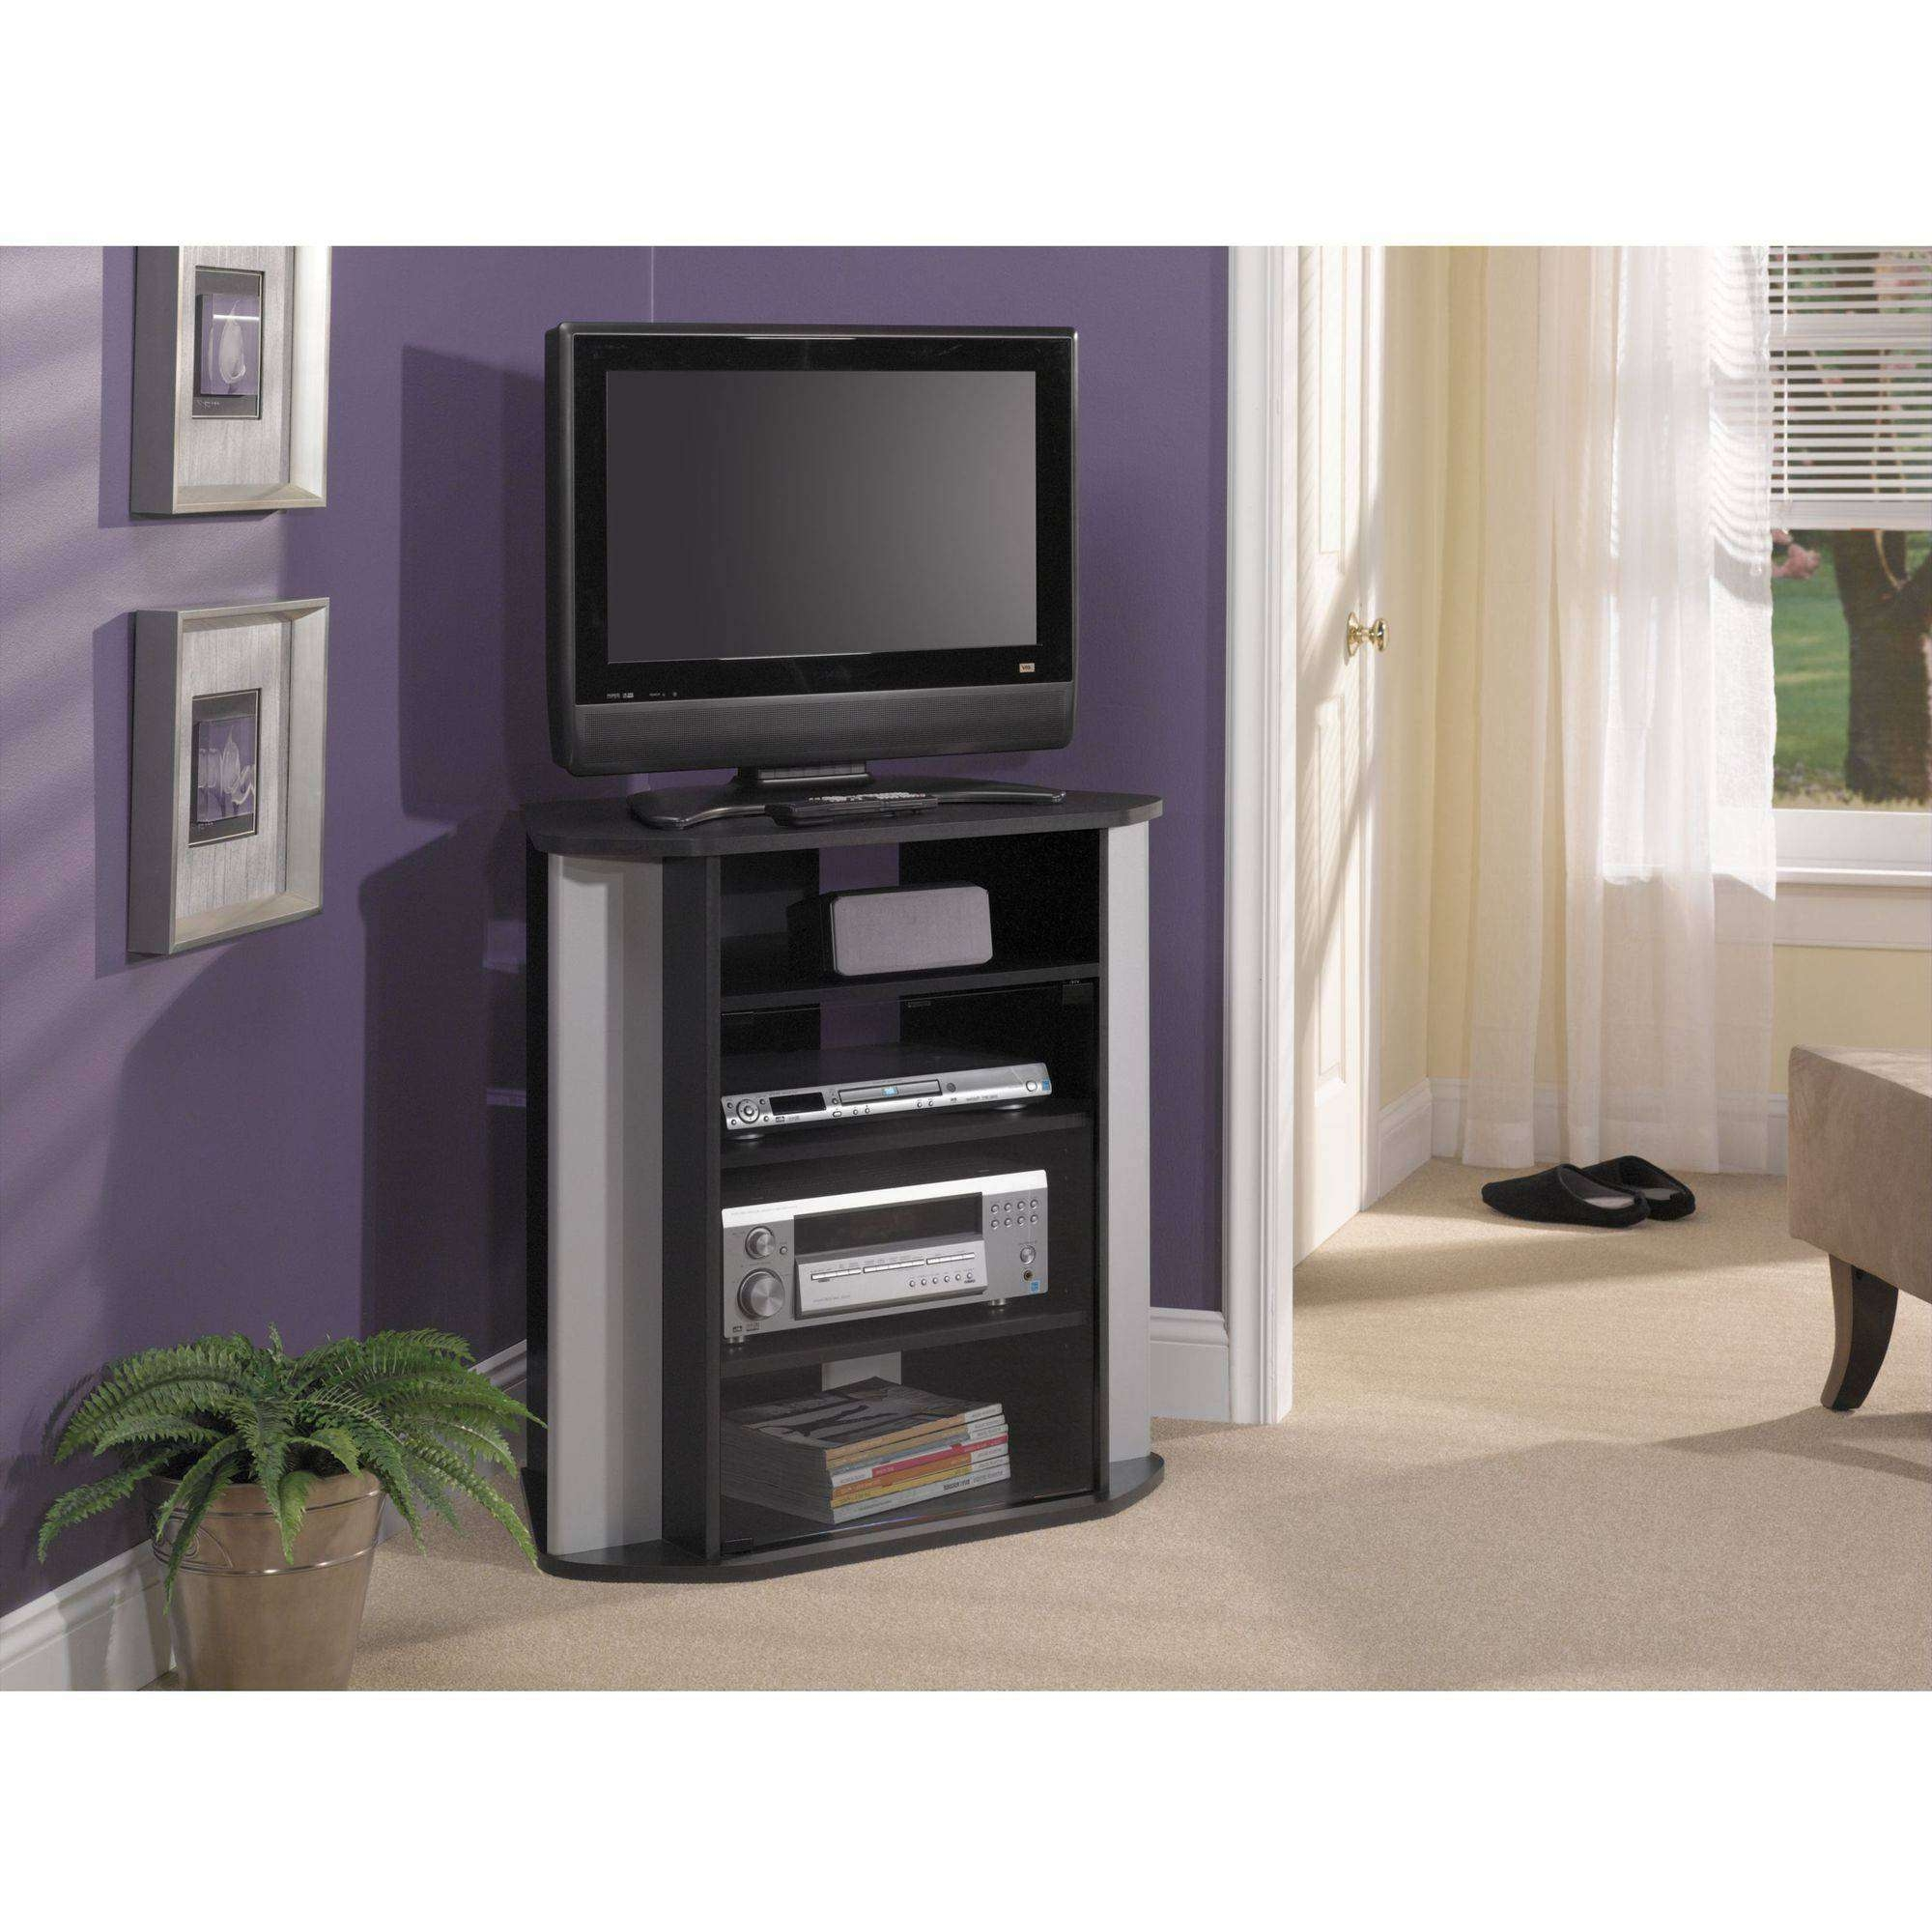 Bush Visions Black Tall Corner Tv Stand, For Tvs Up To 37 Regarding Tall Black Tv Cabinets (View 4 of 20)